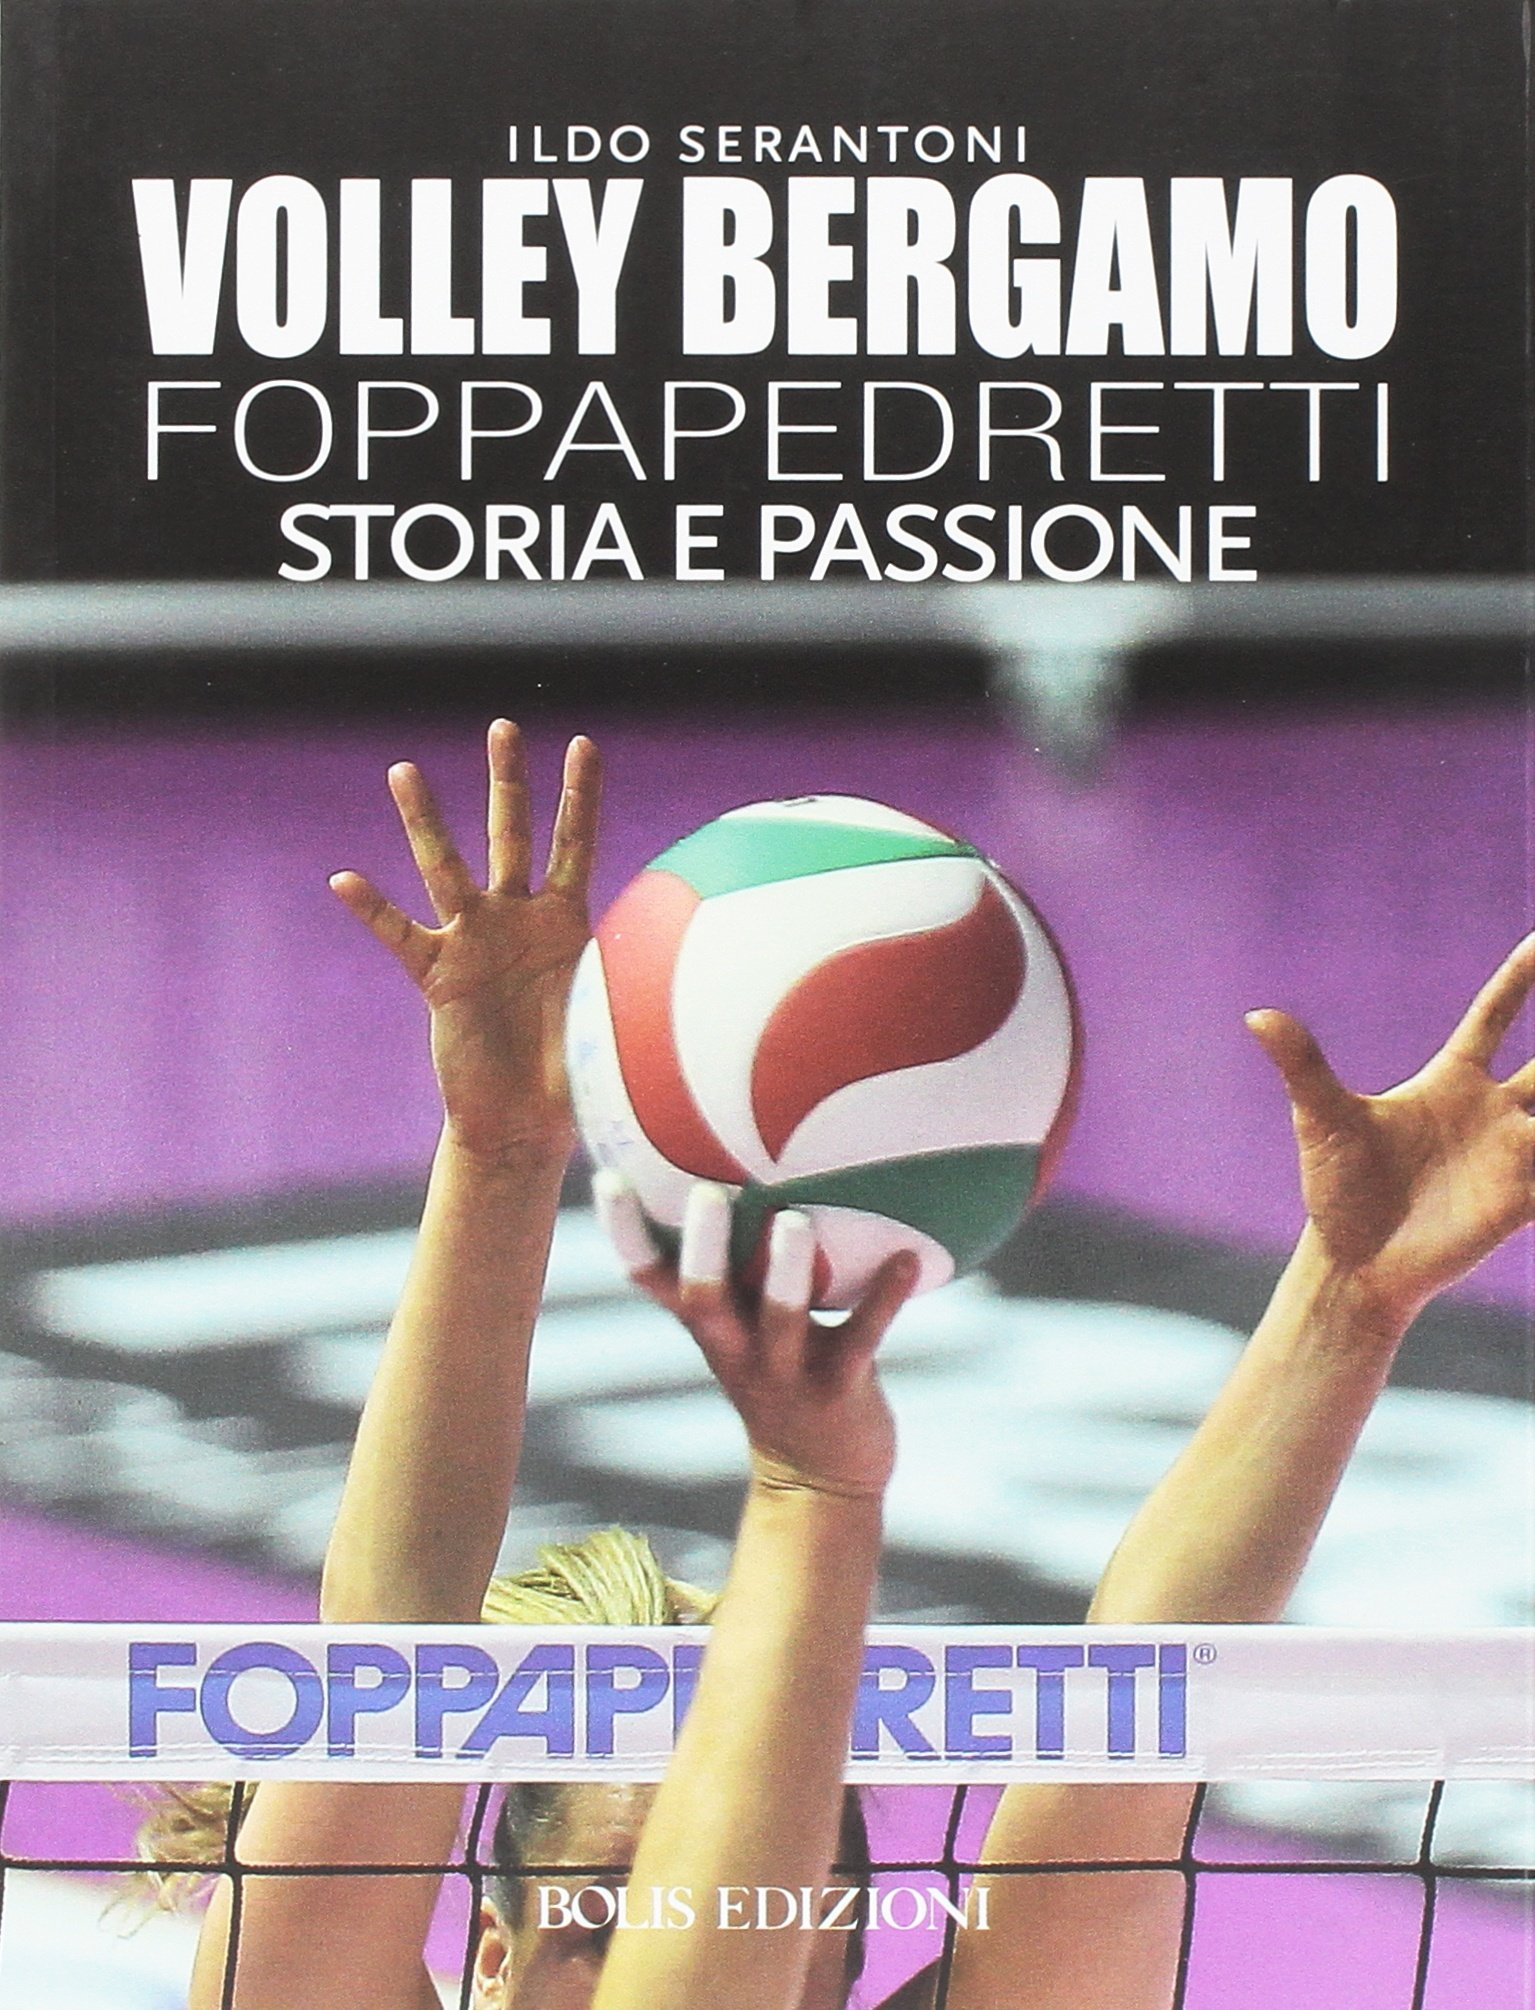 Amazon.it: Volley Bergamo Foppapedretti. Storia e passione - Ildo ...